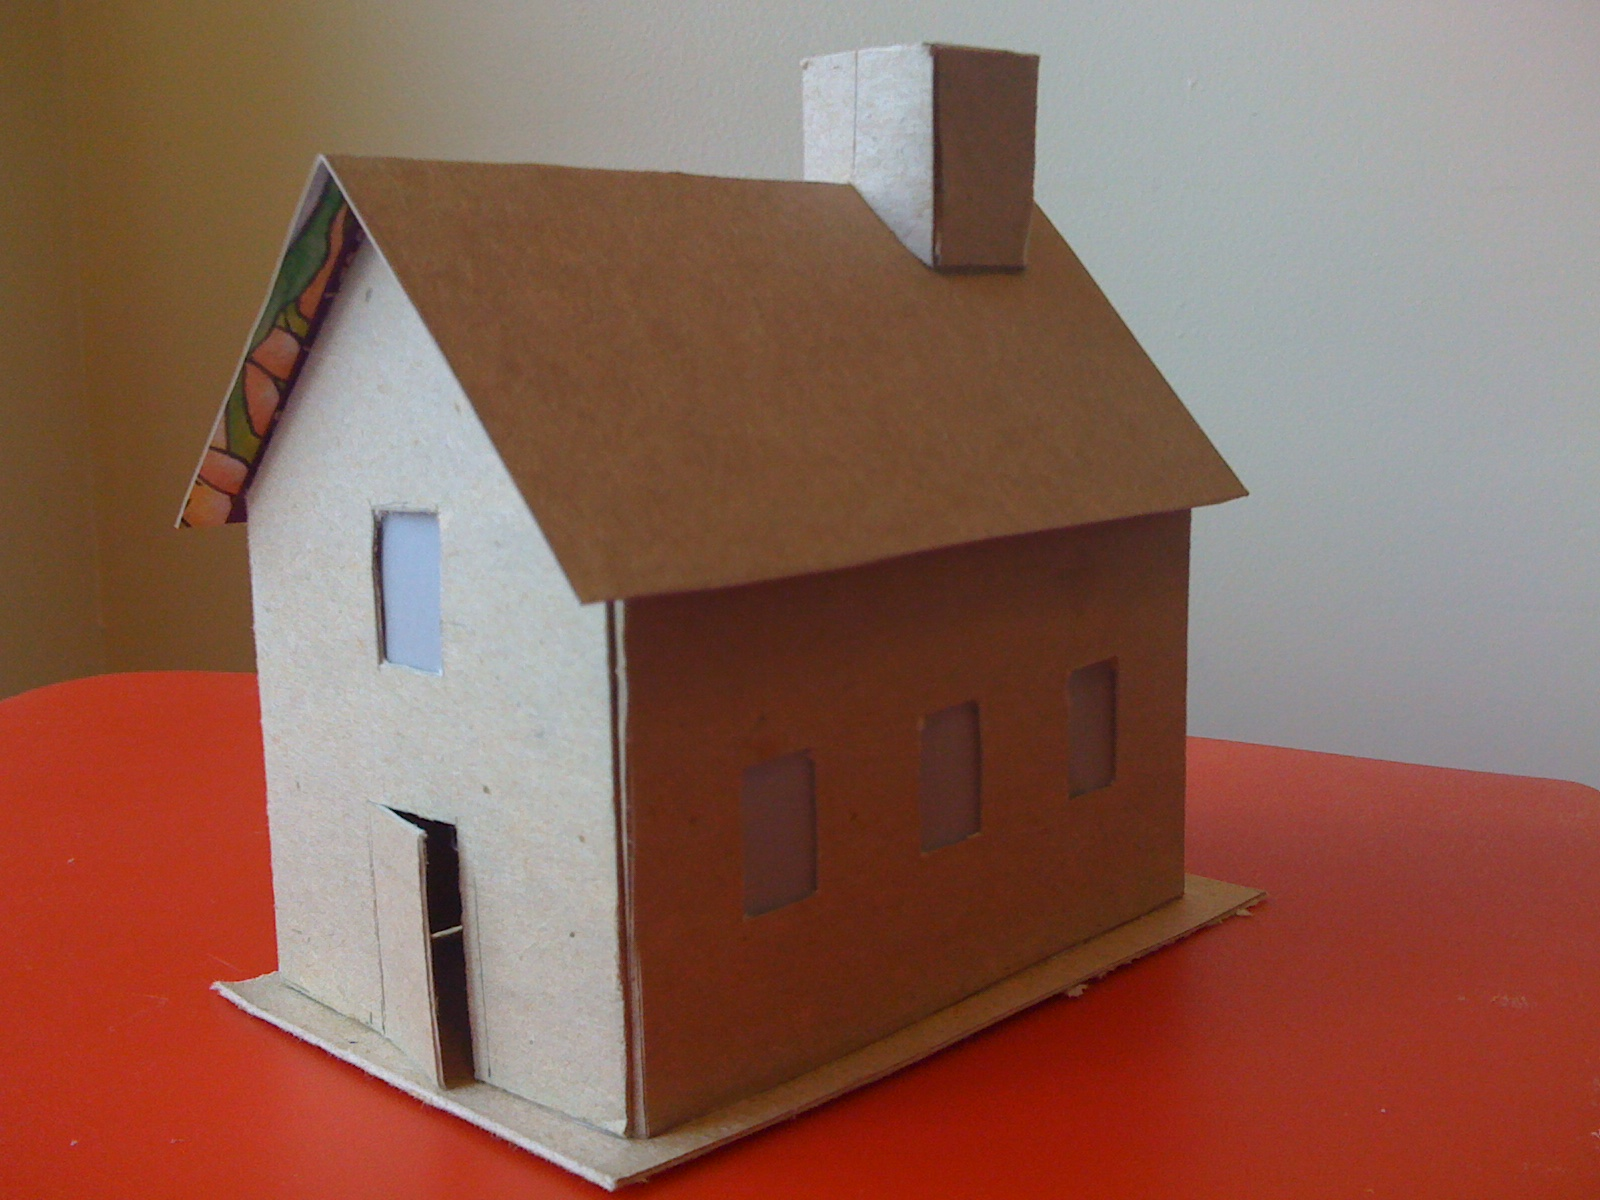 Cardboard house model craft